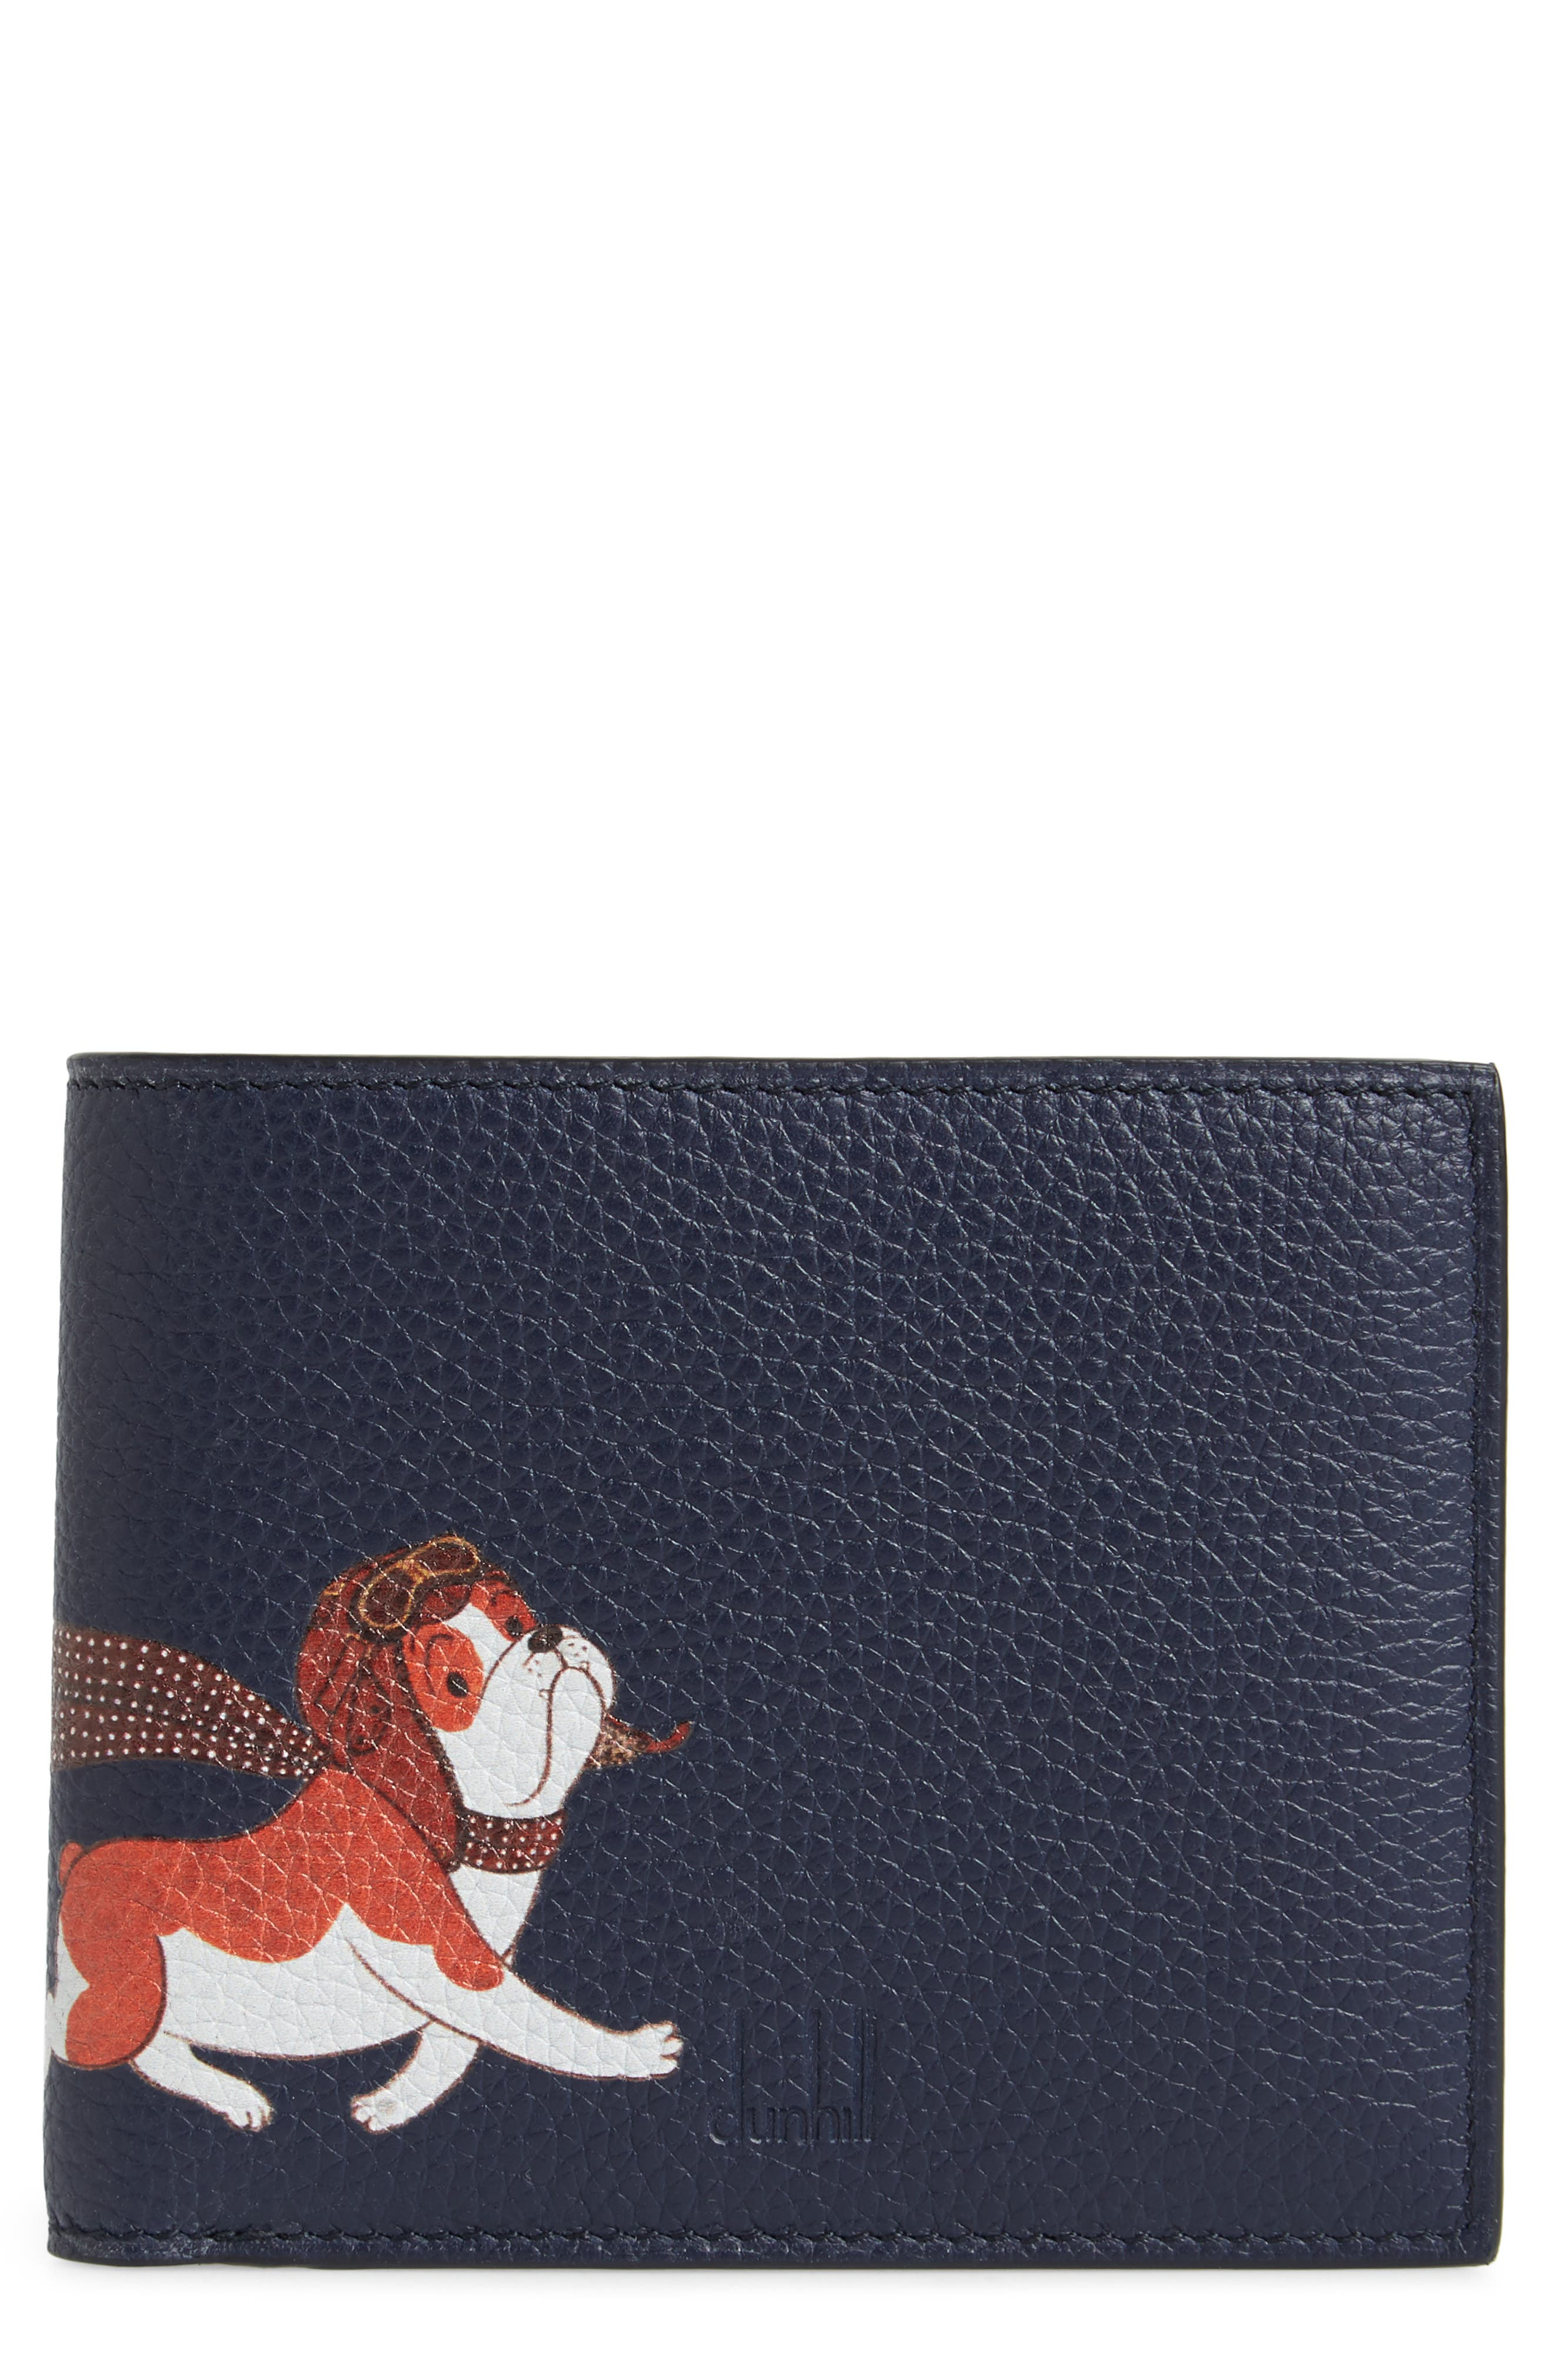 Boston Bulldog Leather Bifold Wallet,                         Main,                         color,